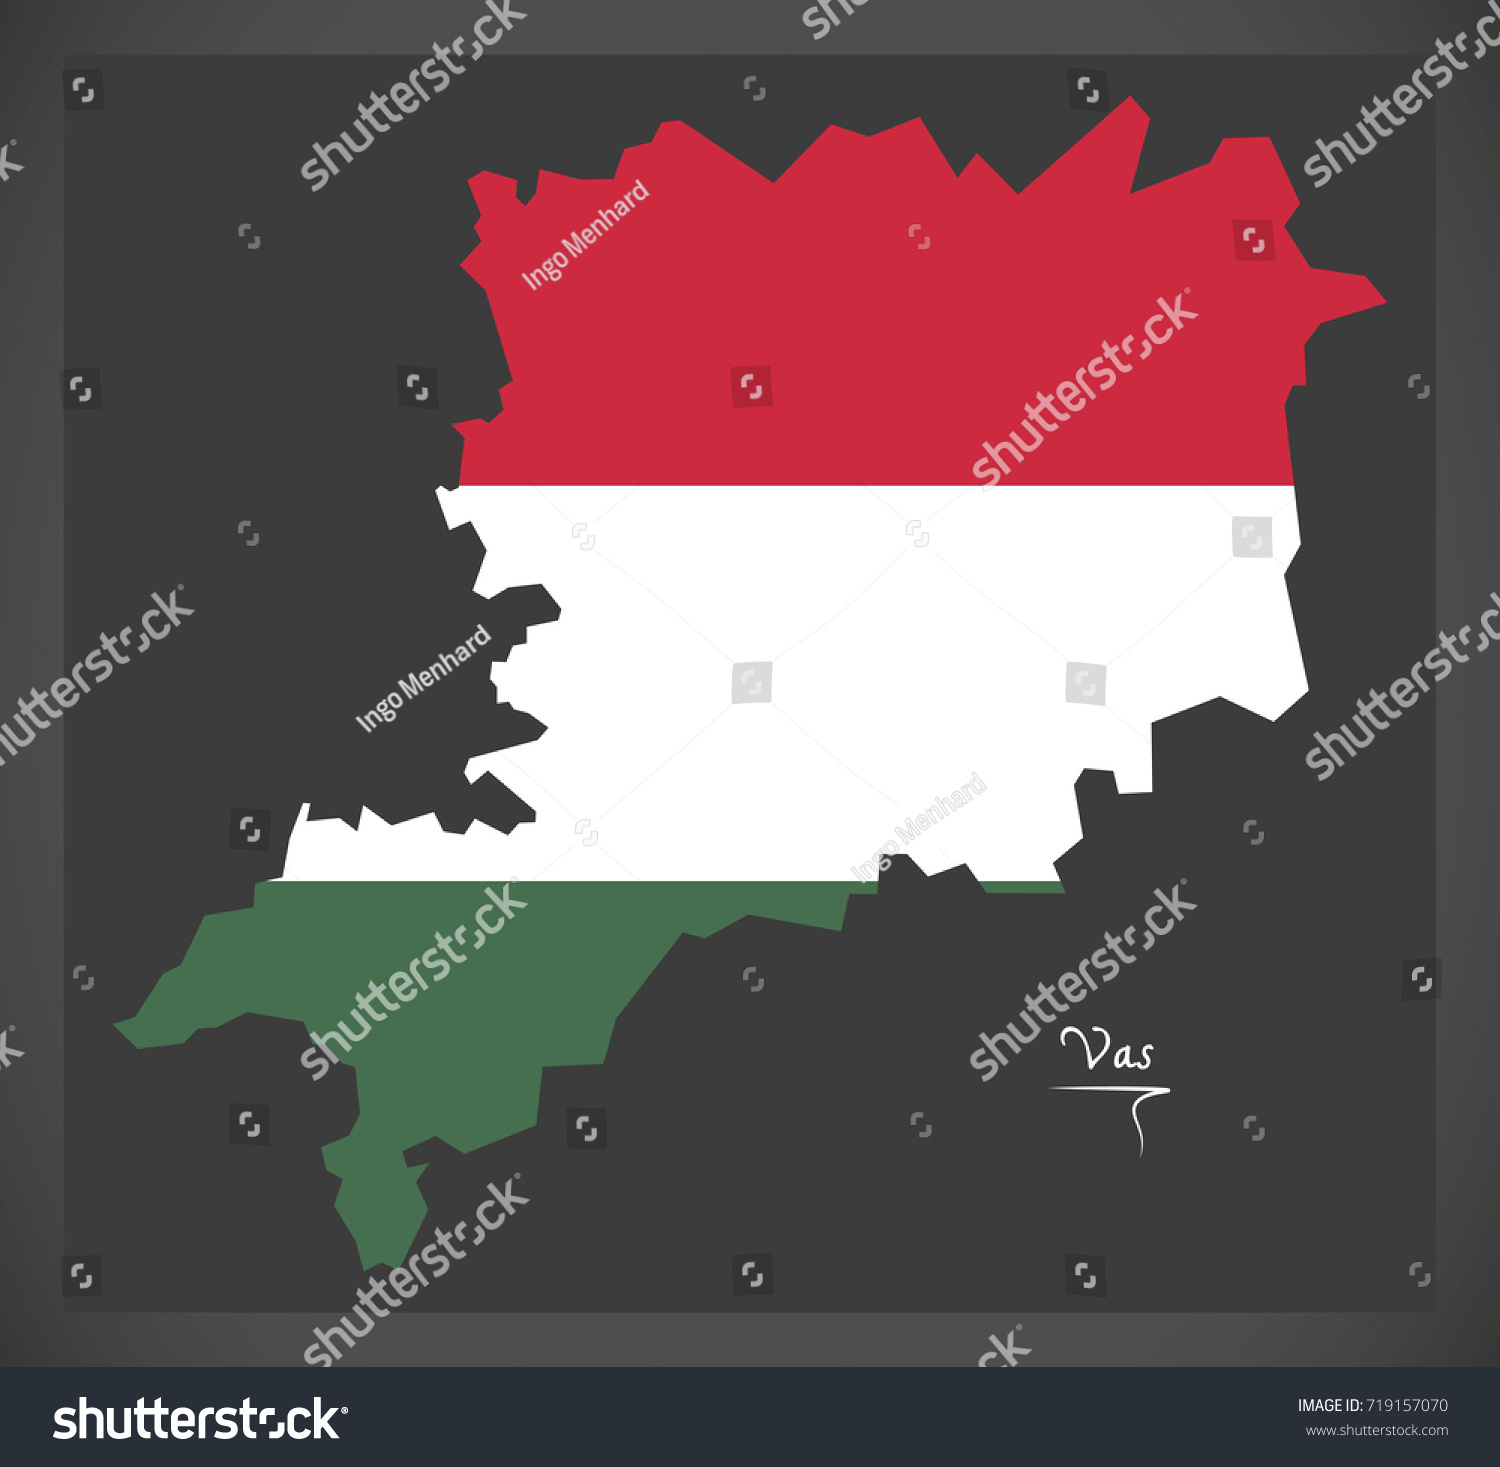 vas map hungary hungarian national flag stock vector 719157070